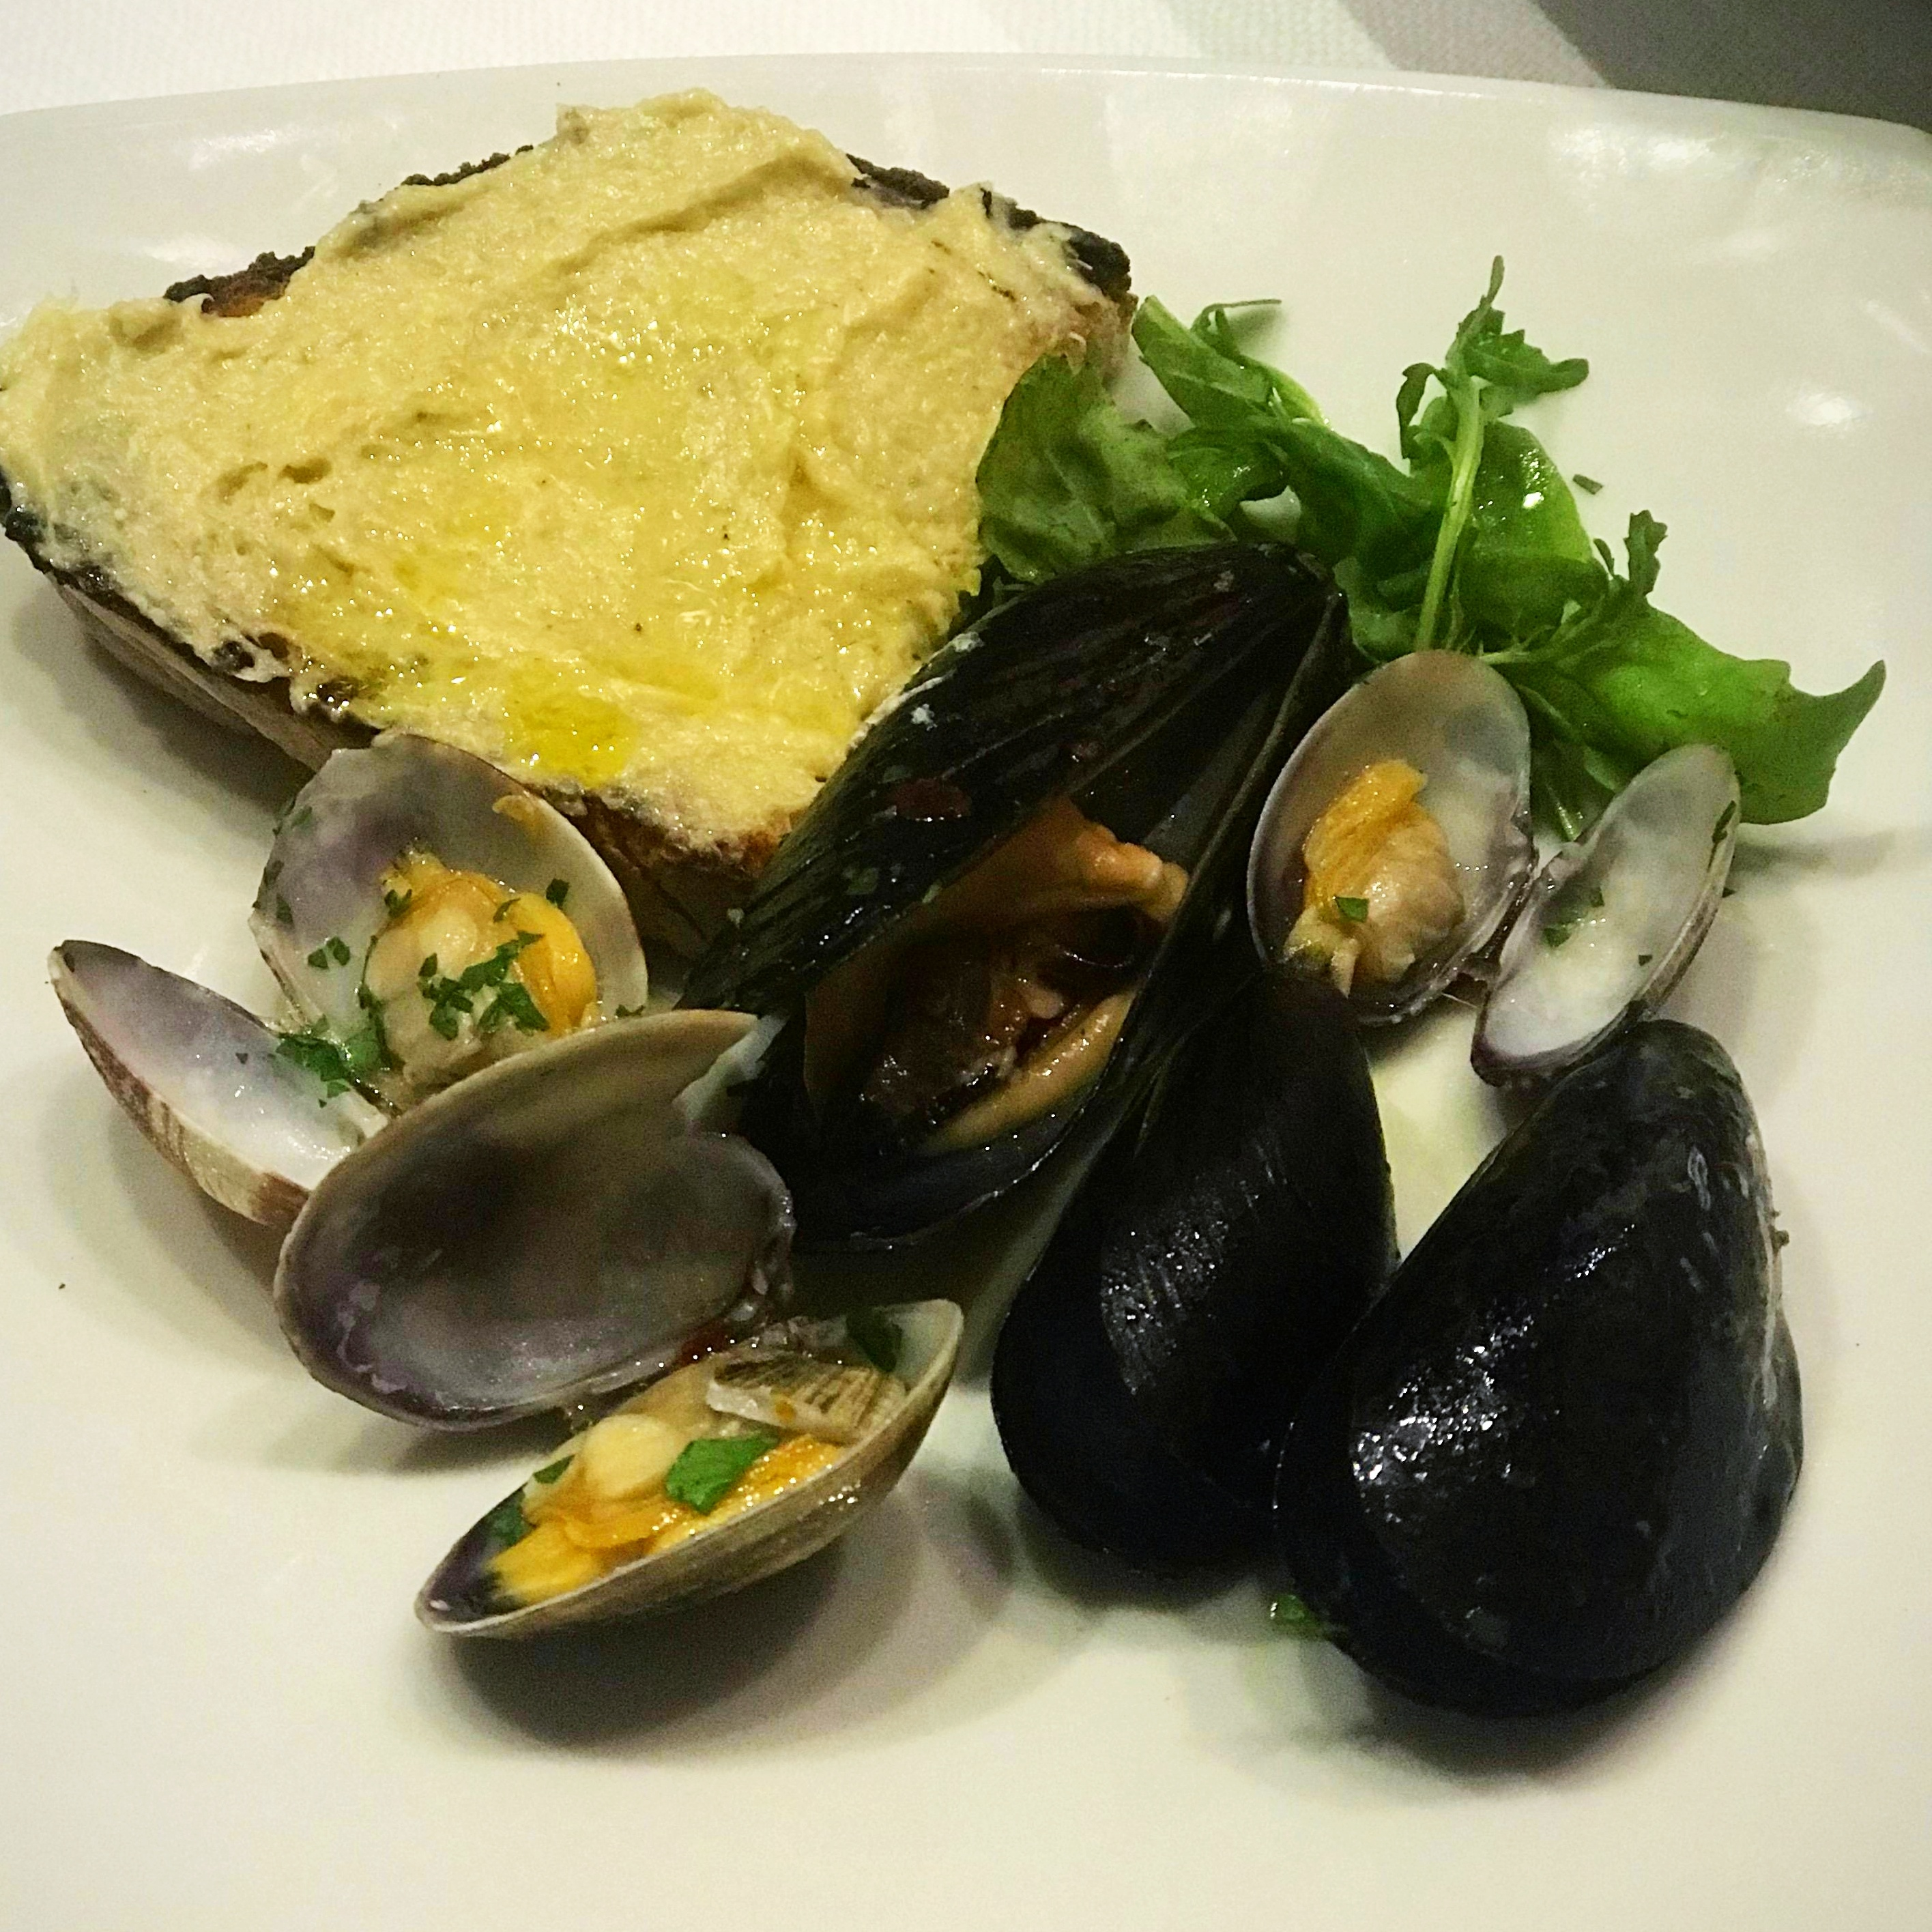 CAPAStudyAbroad_Fall2018_Barcelona_MayaCrawford_A seafood appetizer from Rome, mussels and bread with a special house sauce-055265-edited.jpeg